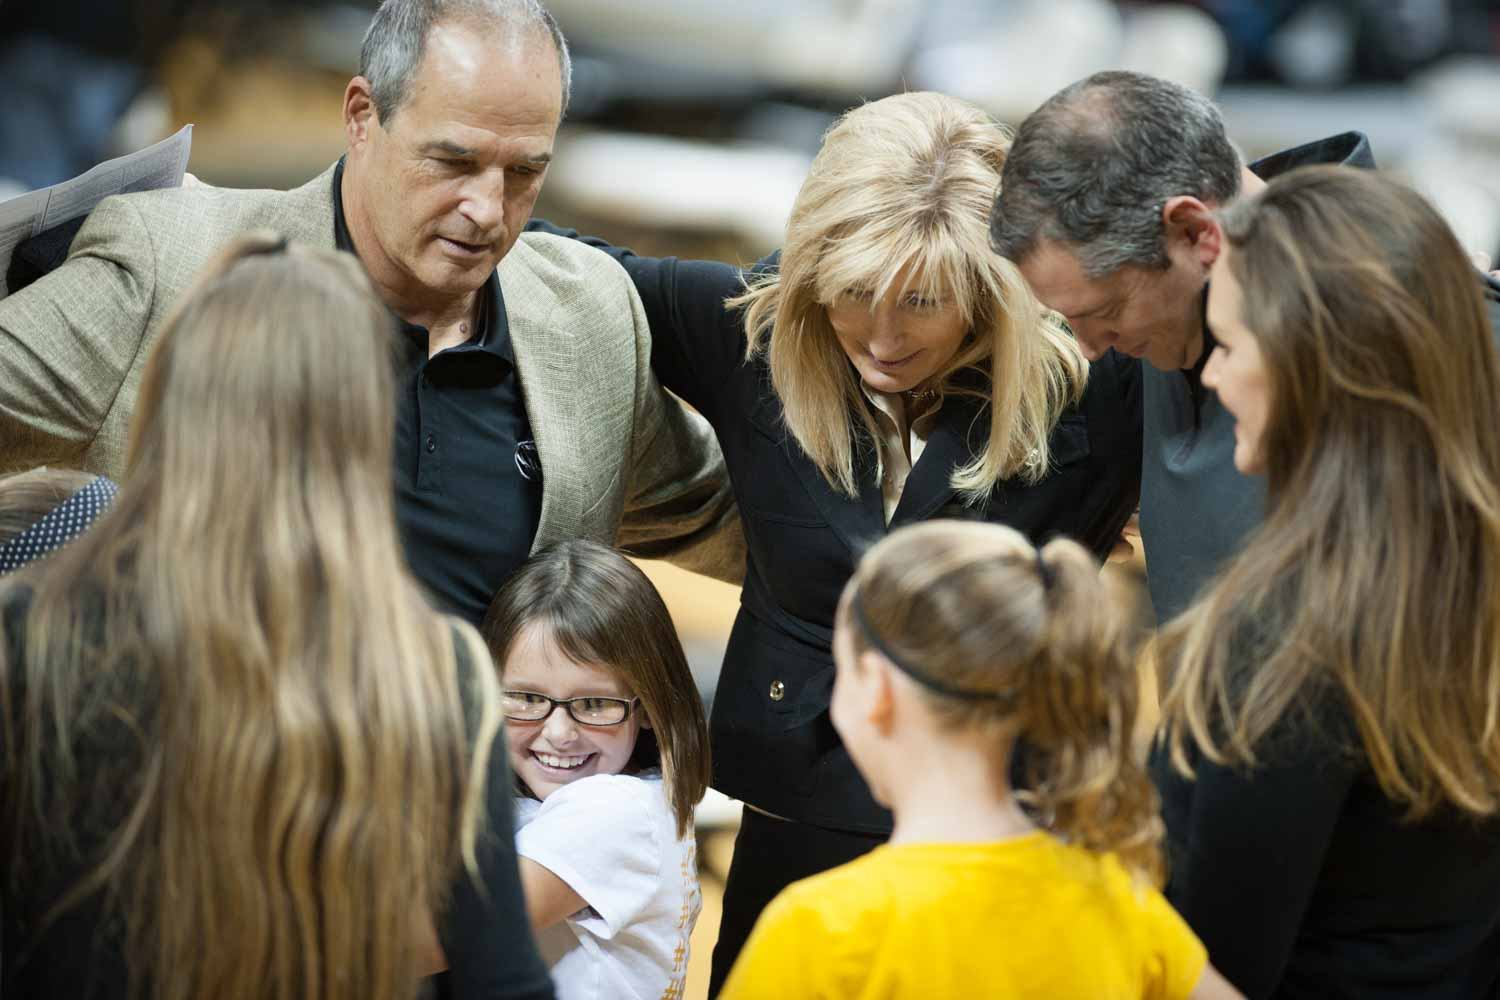 Members of coach Pinkel's family form a circle and embrace one another before leaving the press conference.